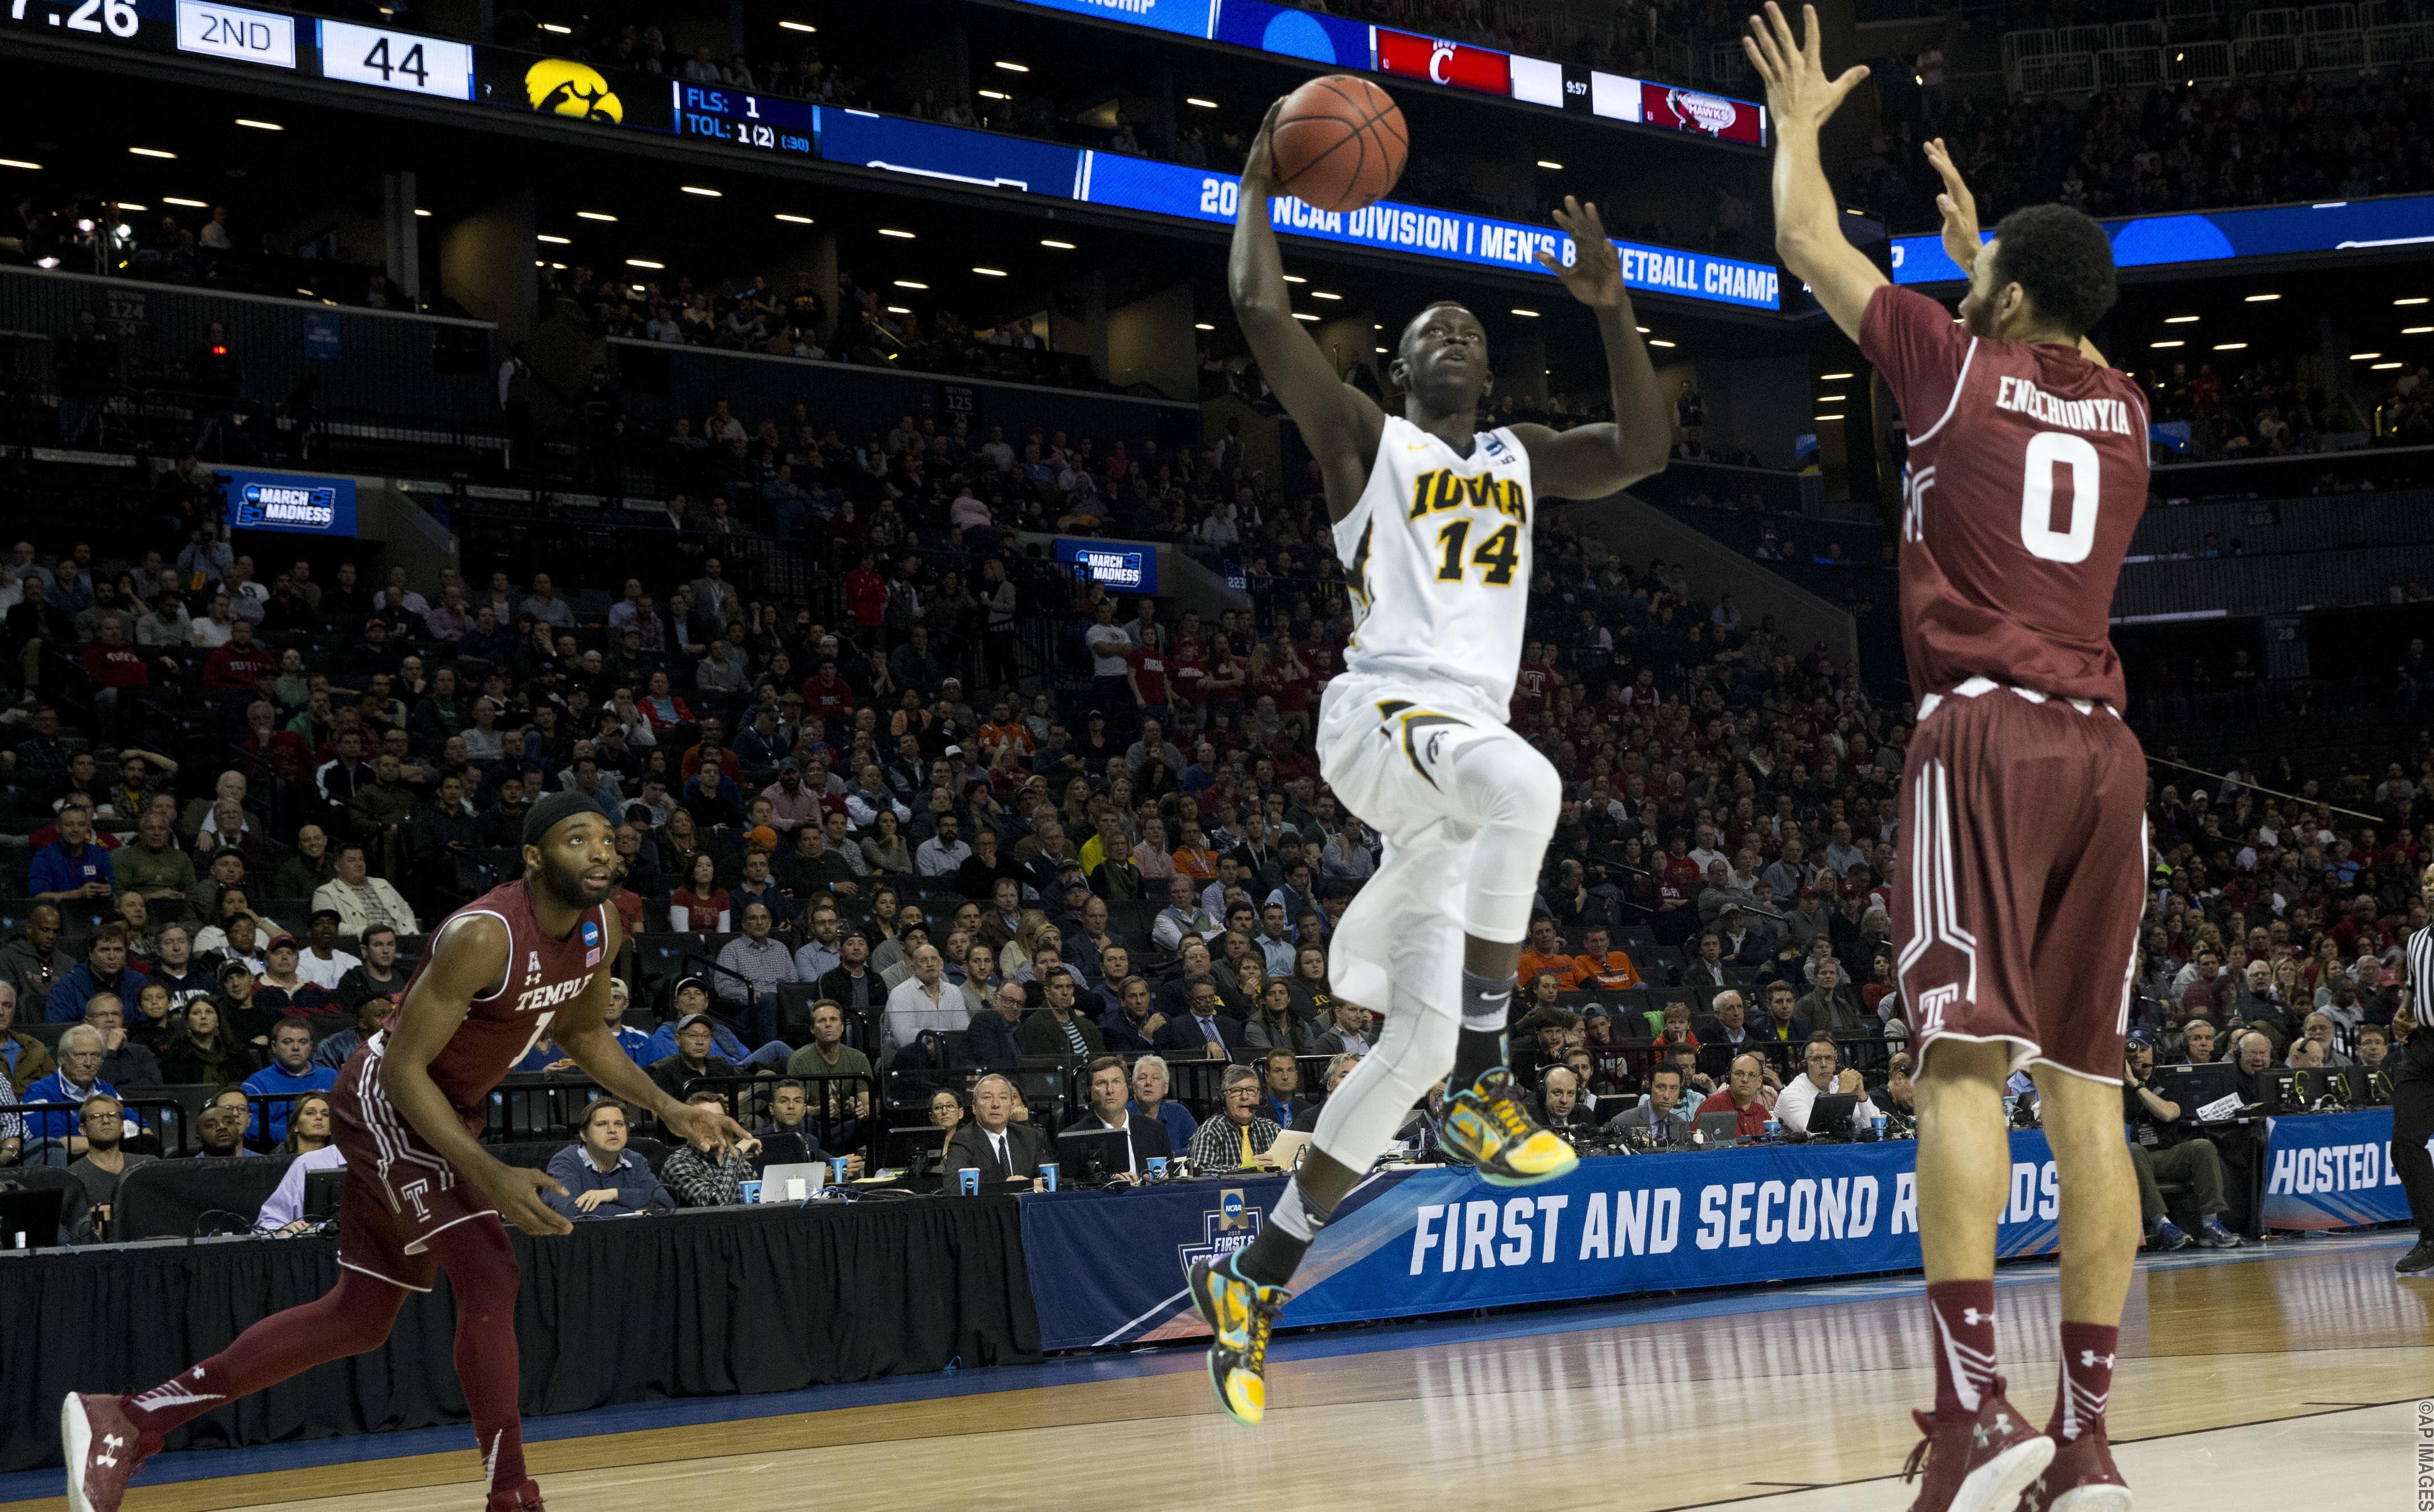 Iowa guard Peter Jok (14) goes to the basket past Temple forward Obi Enechionyia (0) and guard Josh Brown (1) during the second half of a first round men's college basketball game in the NCAA Tournament, Friday, March 18, 2016, in New York. Iowa won 72-20 in overtime. (AP Photo/Mary Altaffer)